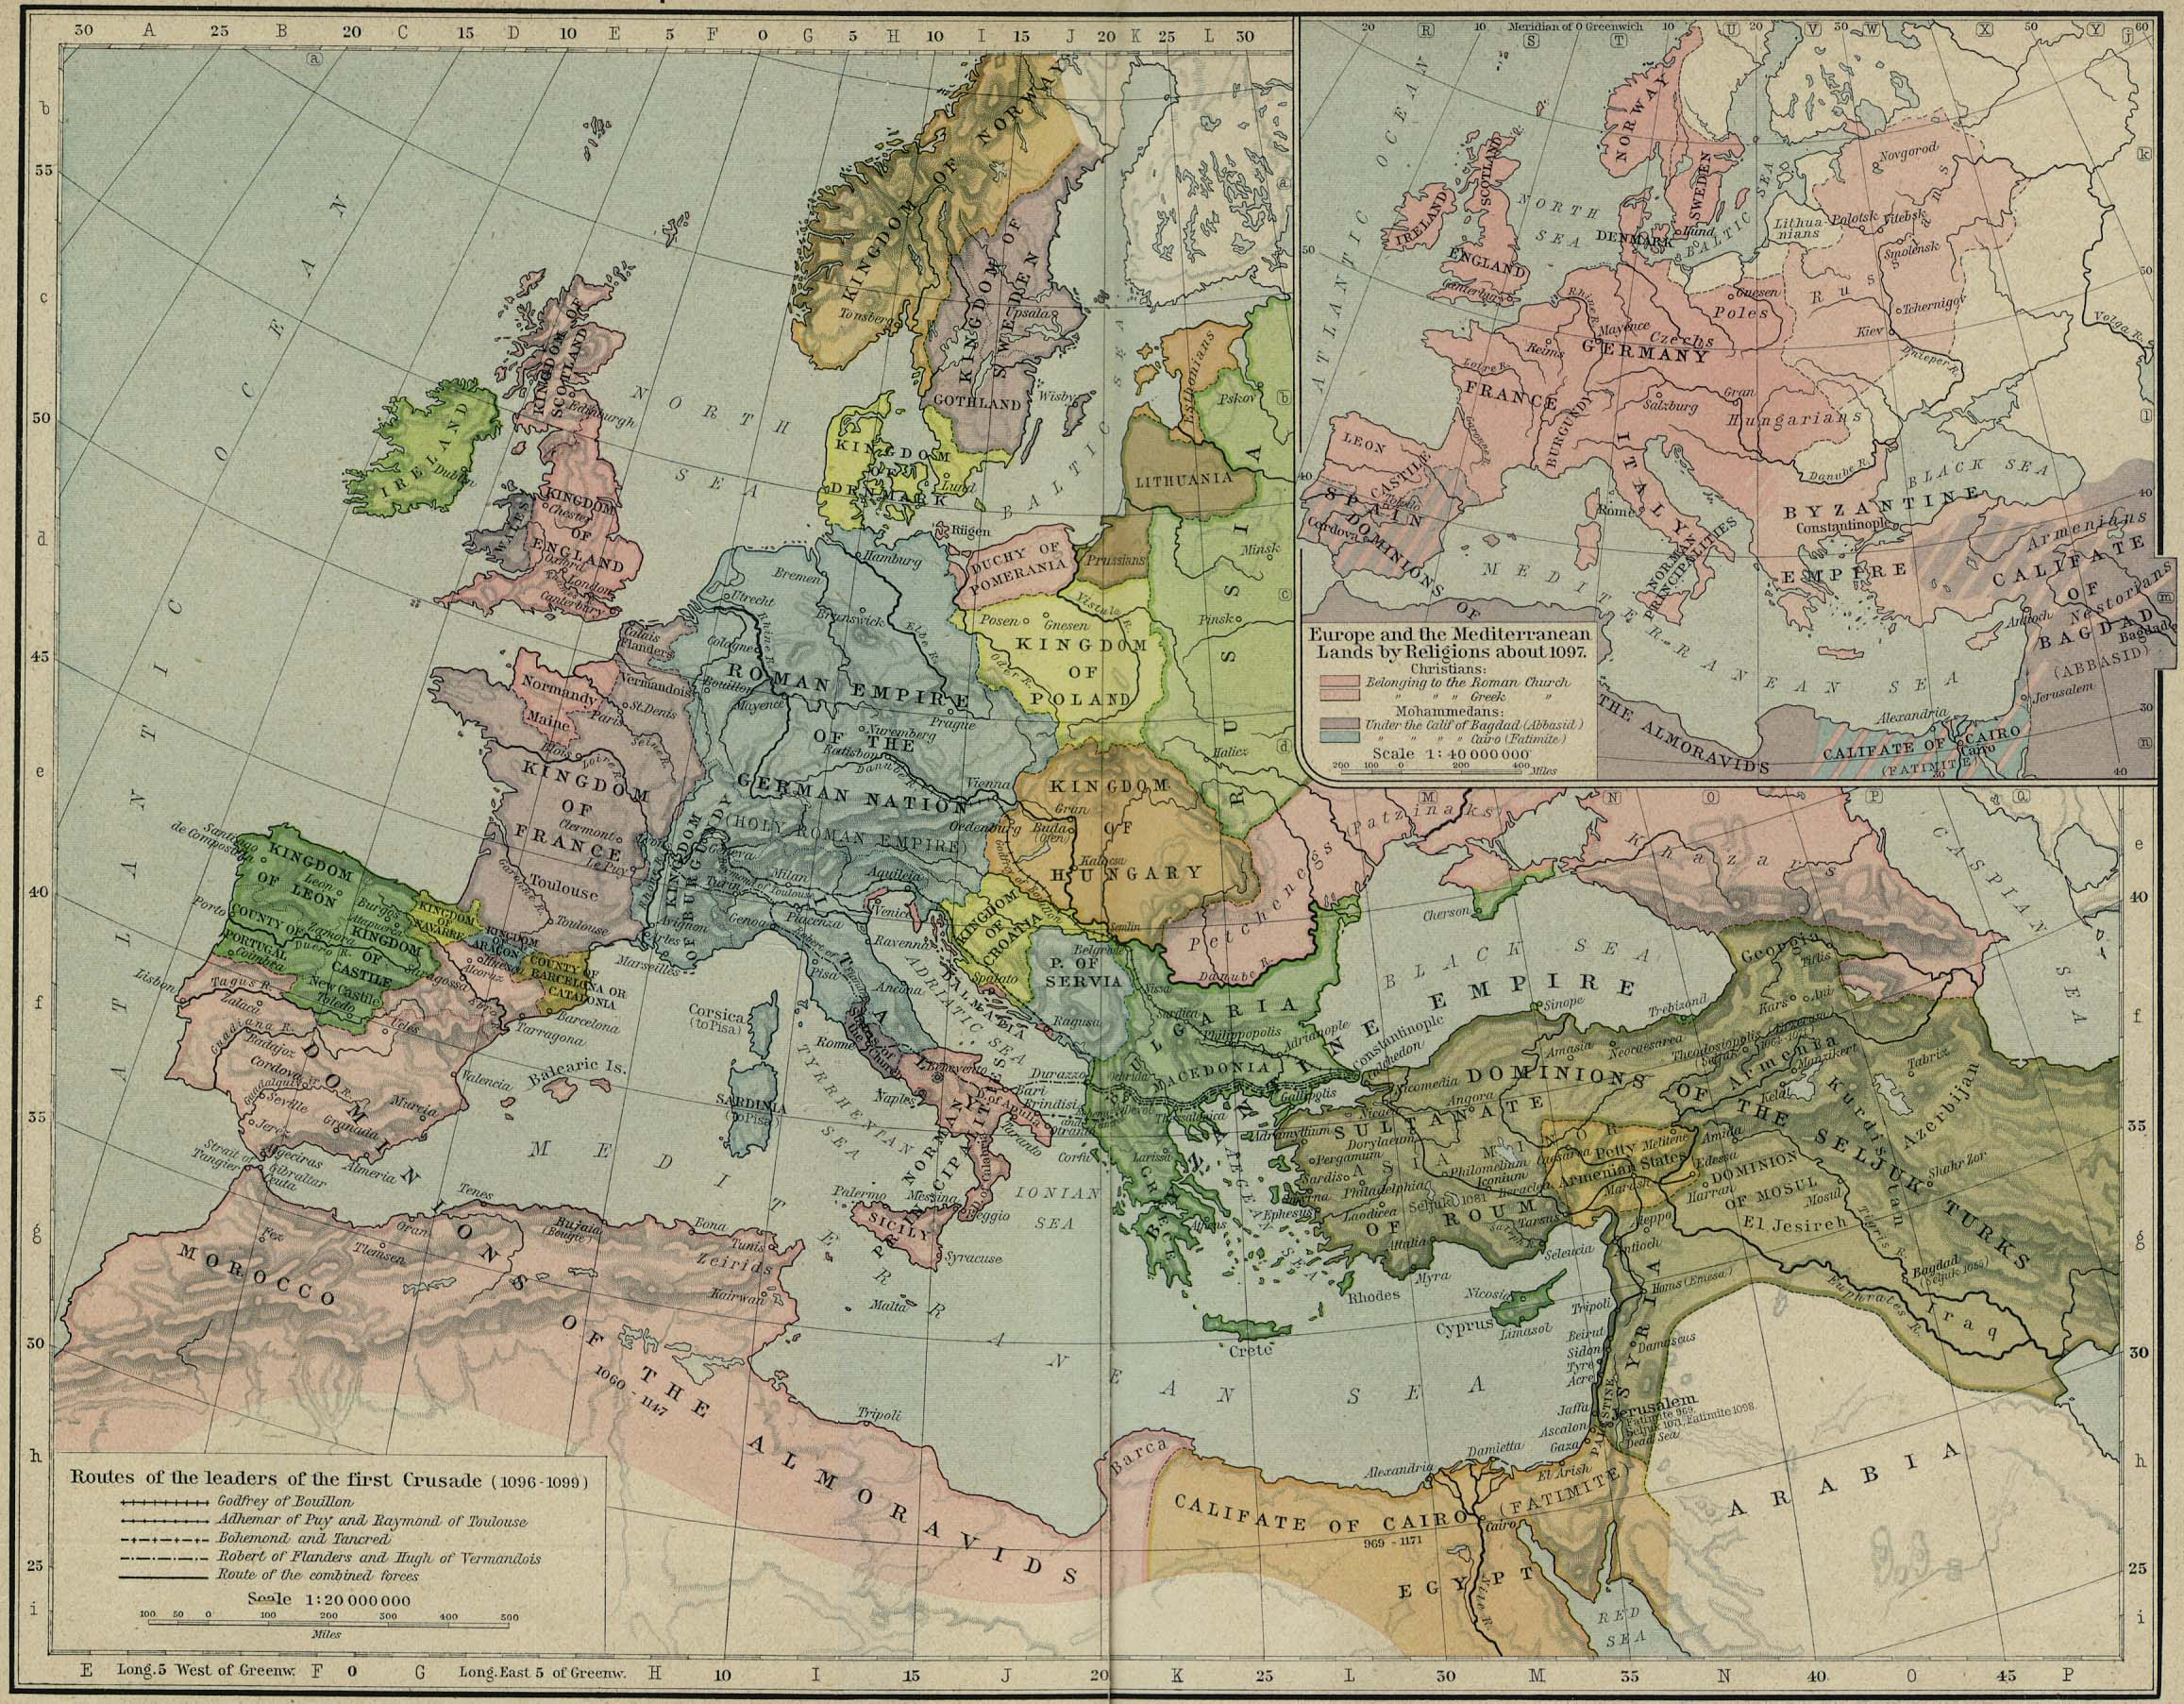 Historical atlas by william r shepherd perry castaeda map europe and the mediterranean lands about 1097 gumiabroncs Gallery